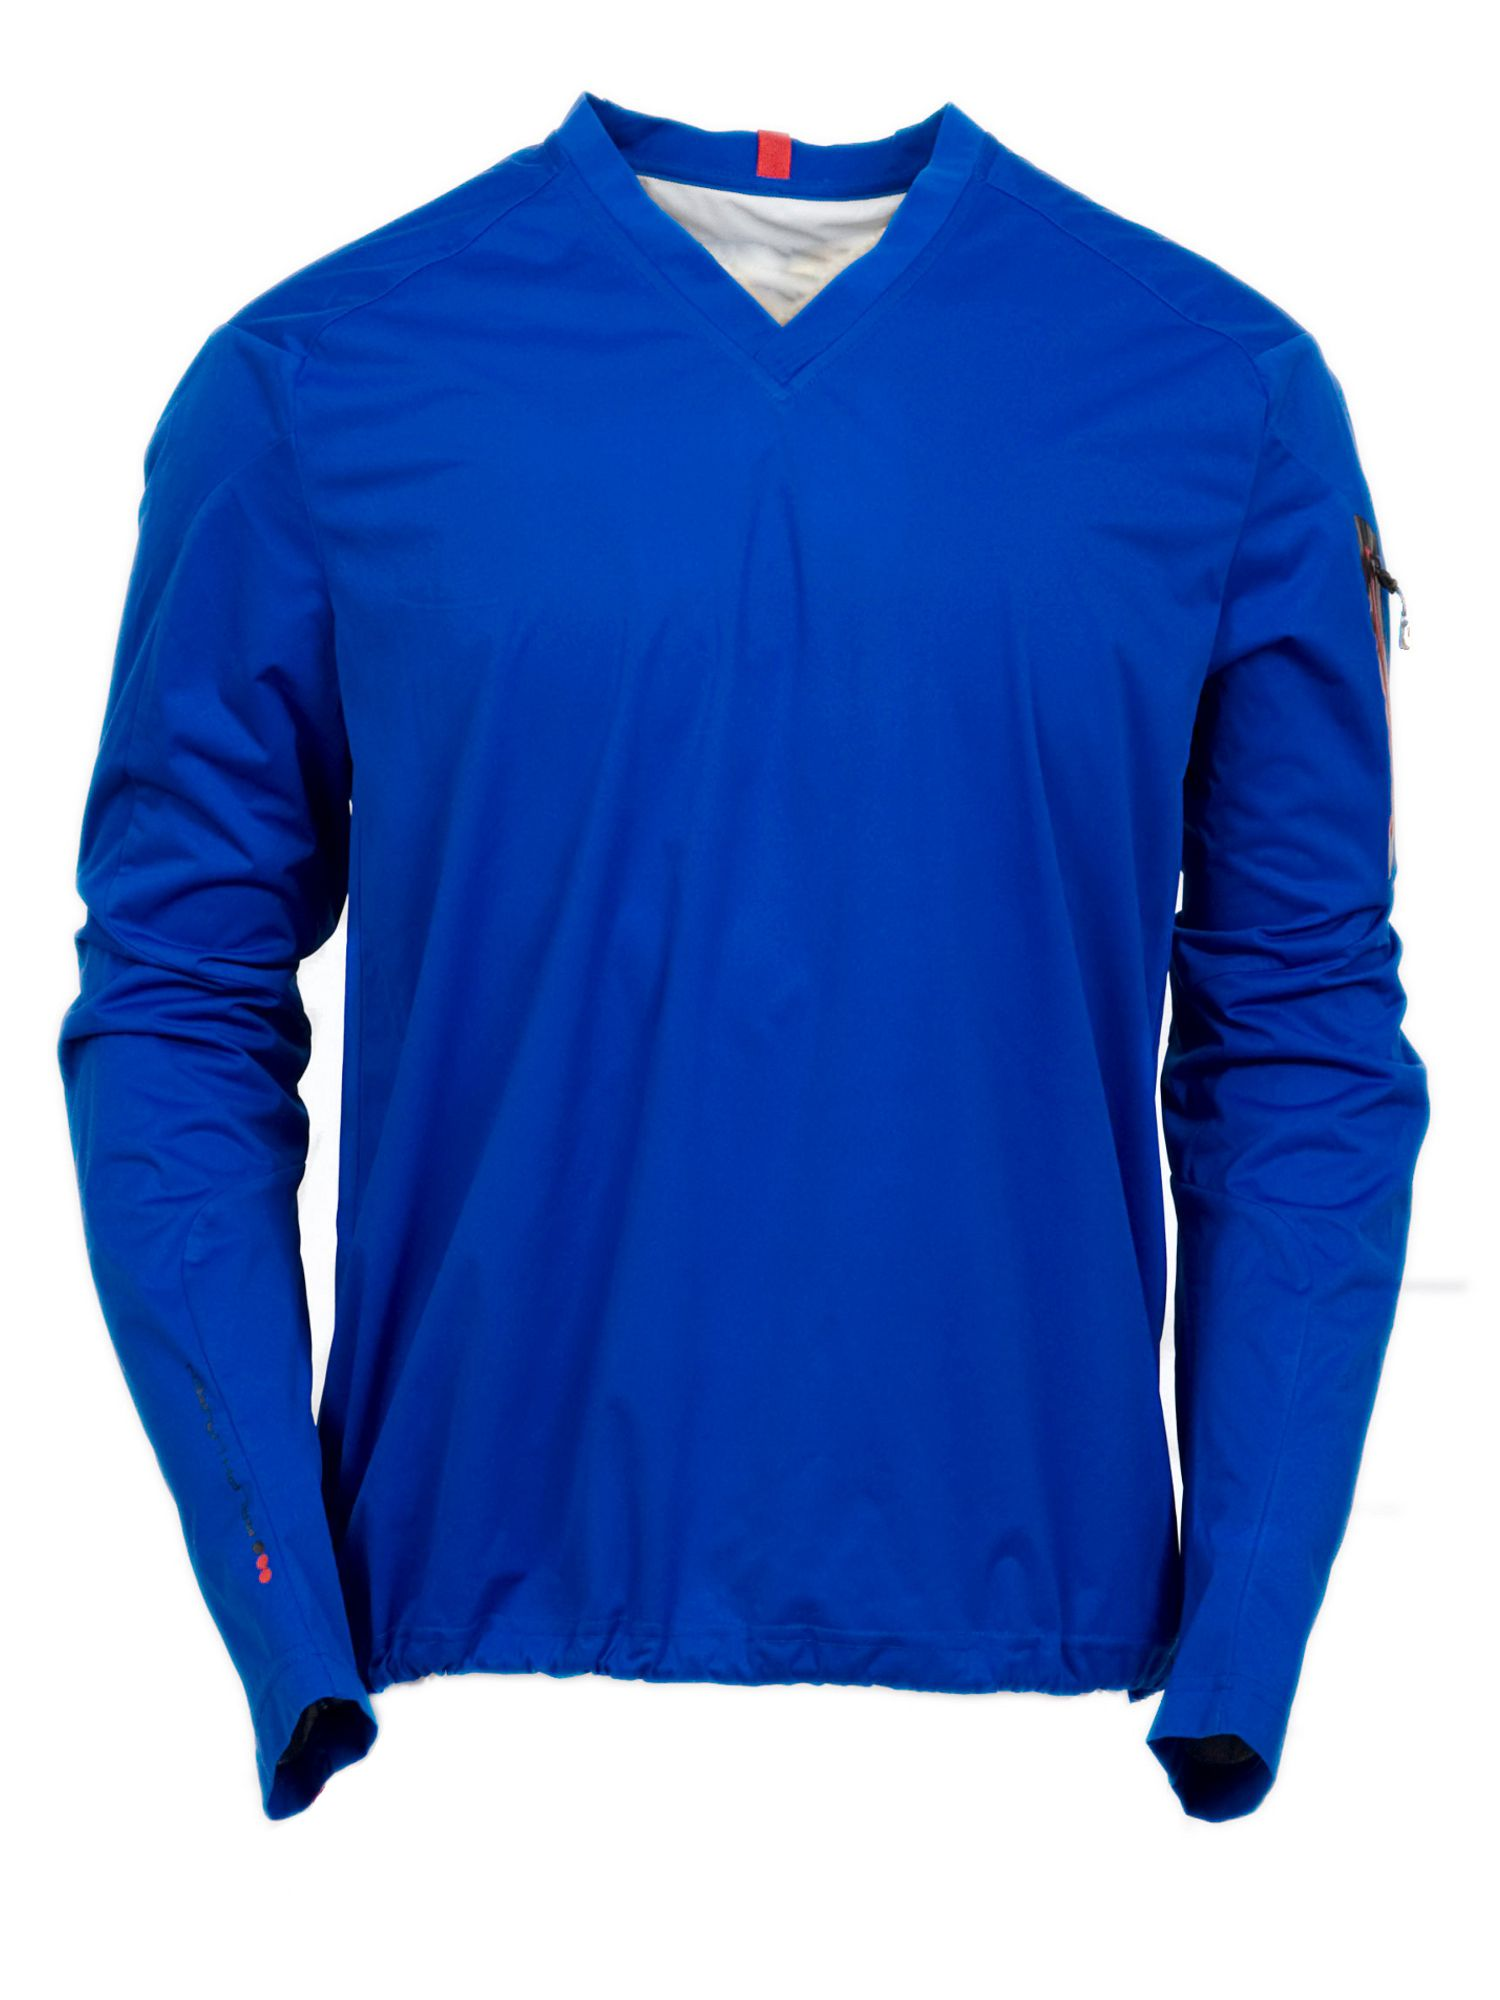 Stratus v neck windshirt